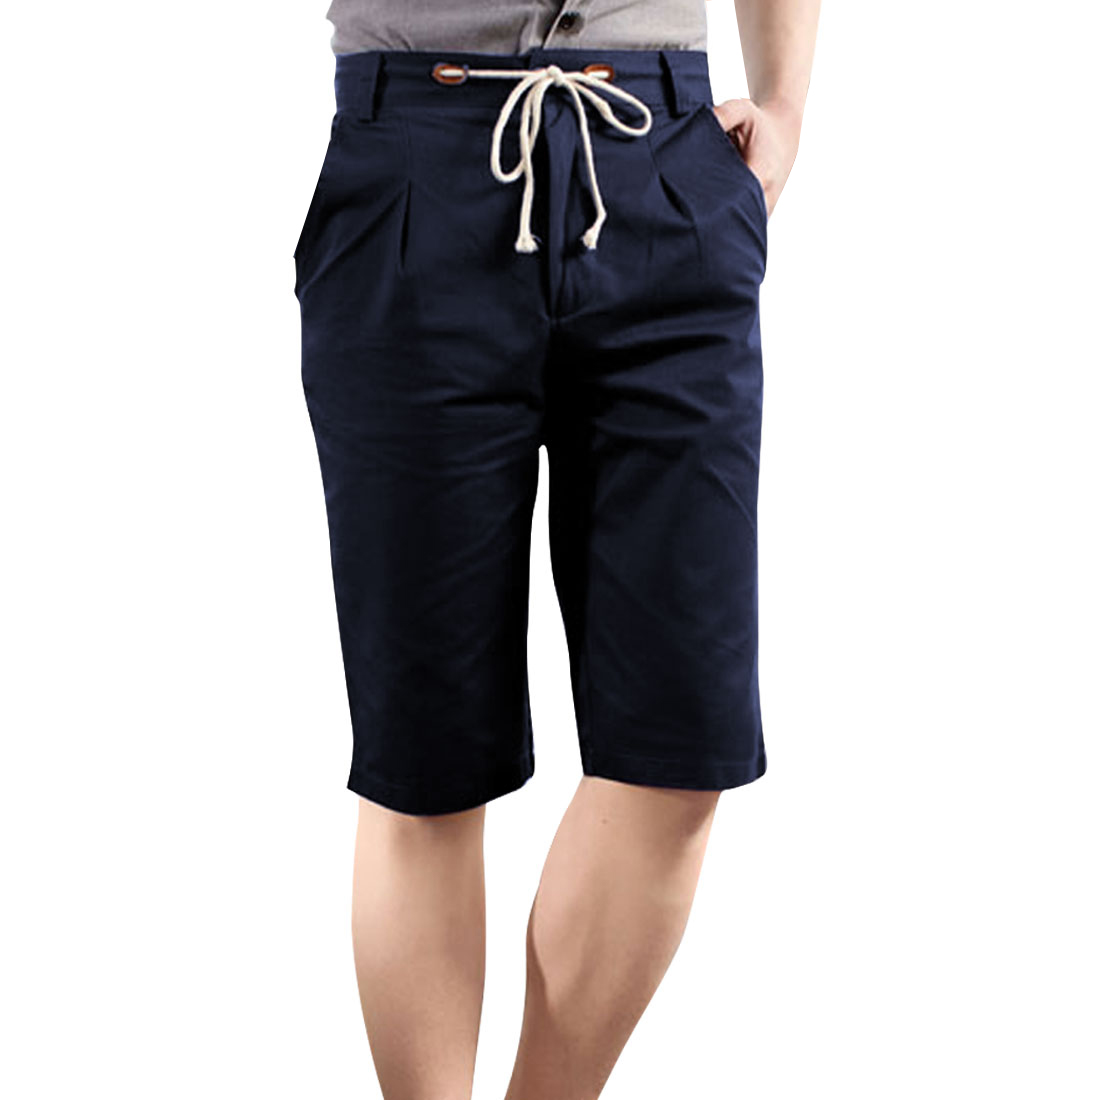 Men Slant Side Pockets Zip Fly Front Straped Waist Navy Blue Shorts W29